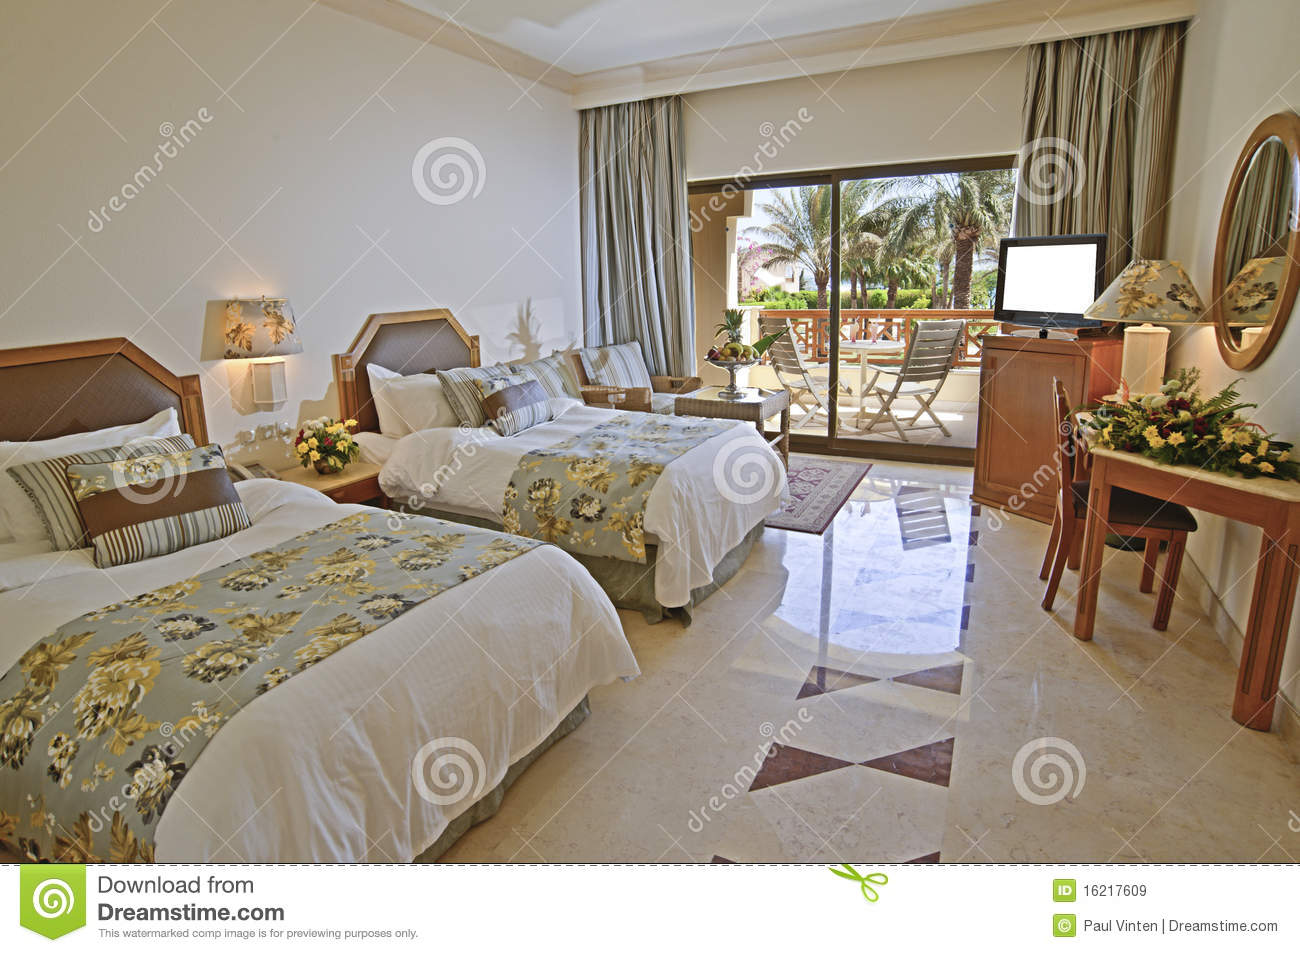 Luxury Hotel Bedroom With Sea View Royalty Free Stock Images - Image ...